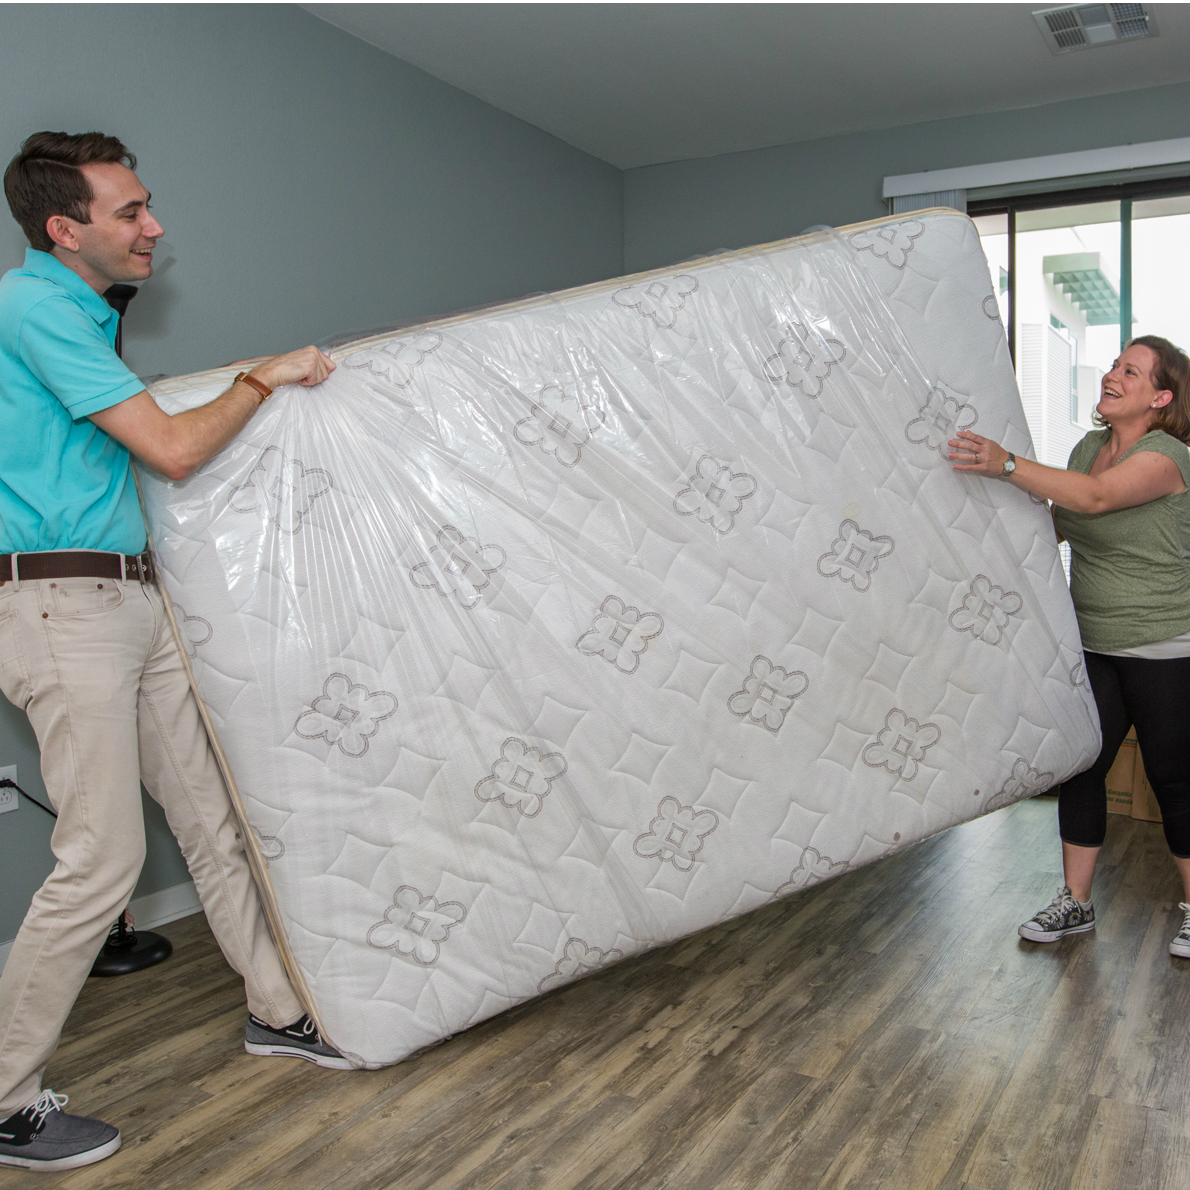 Mattress Pads and other moving supplies